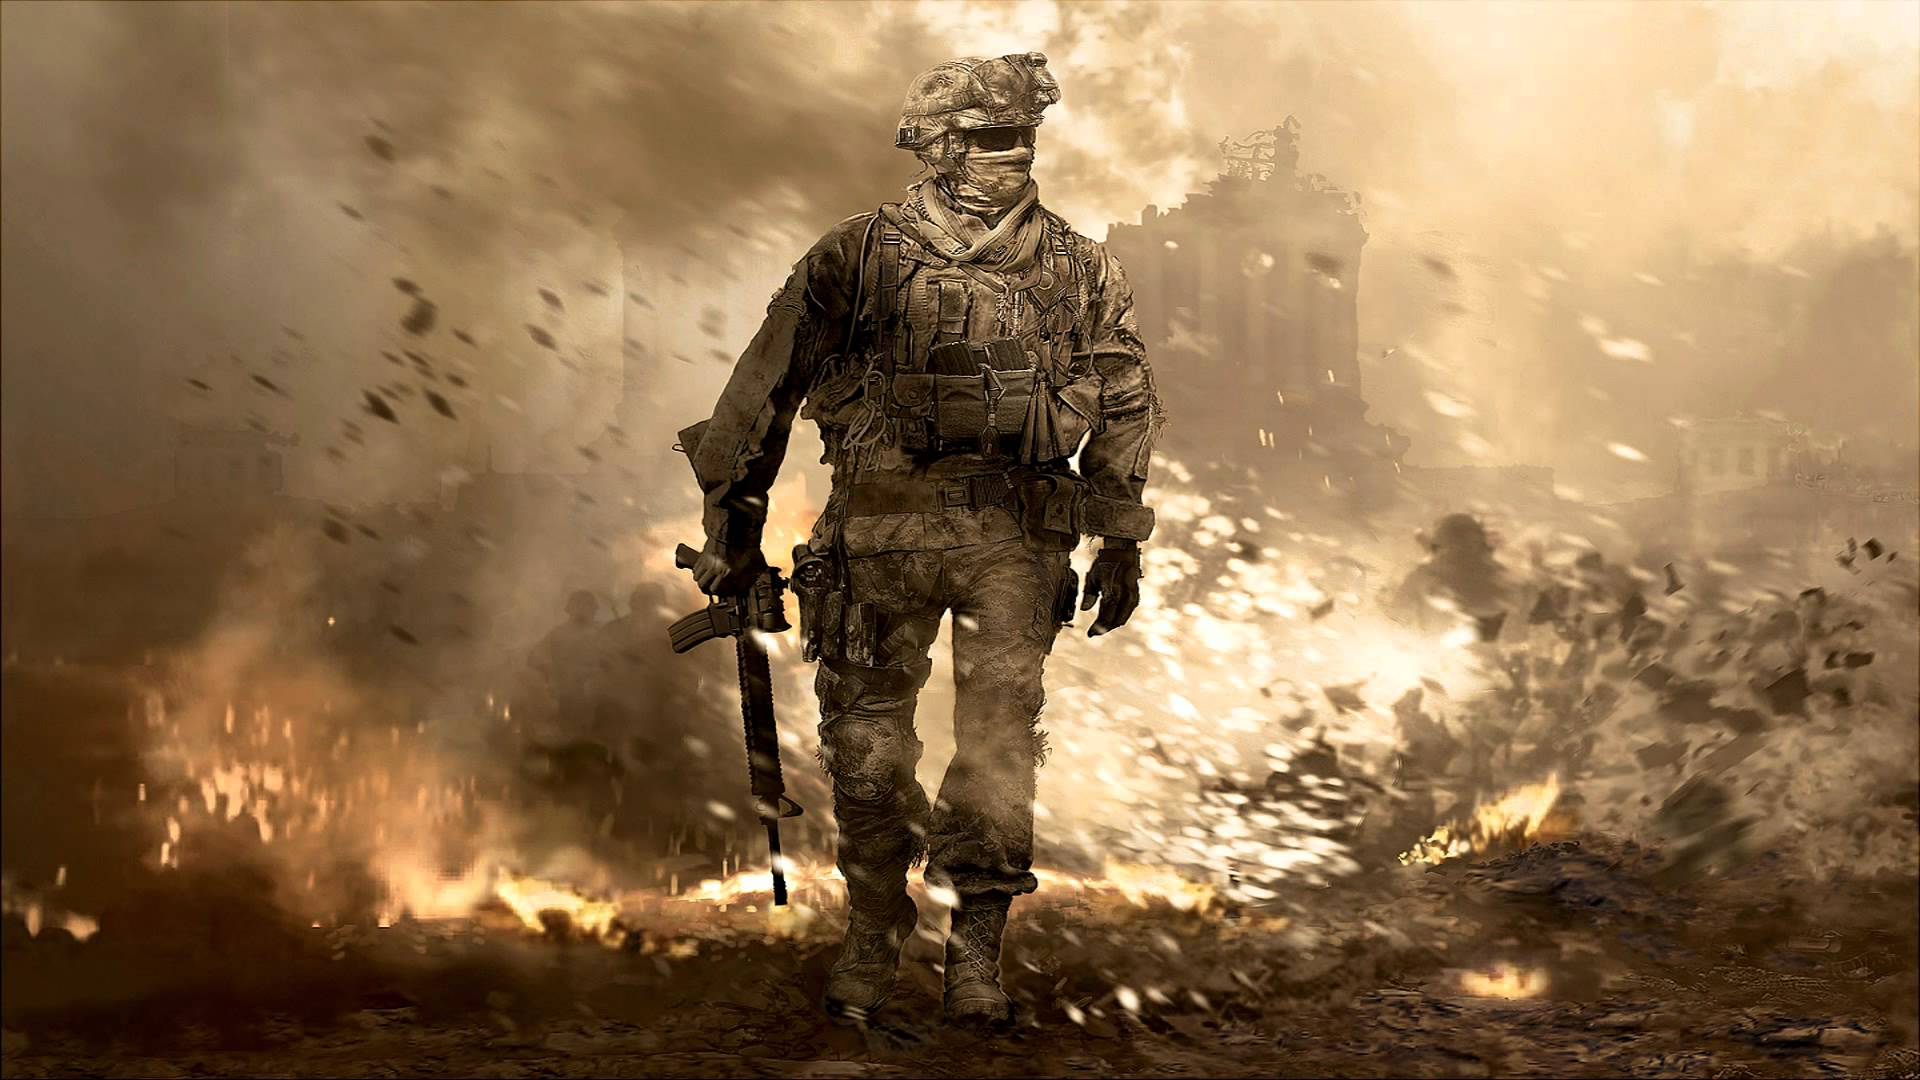 MW2 and COD4 to be bundled with new Call of Duty?